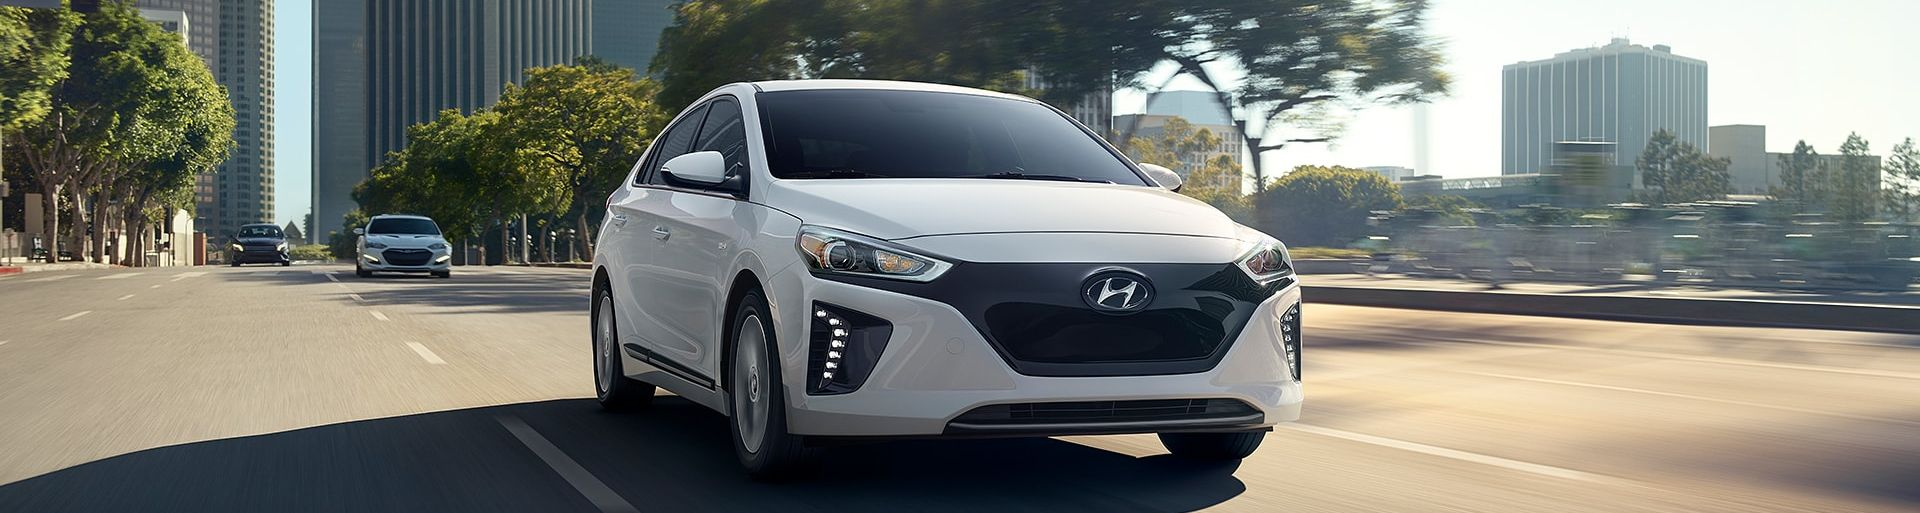 2019 Hyundai Ioniq Electric Leasing near Laurel, MD